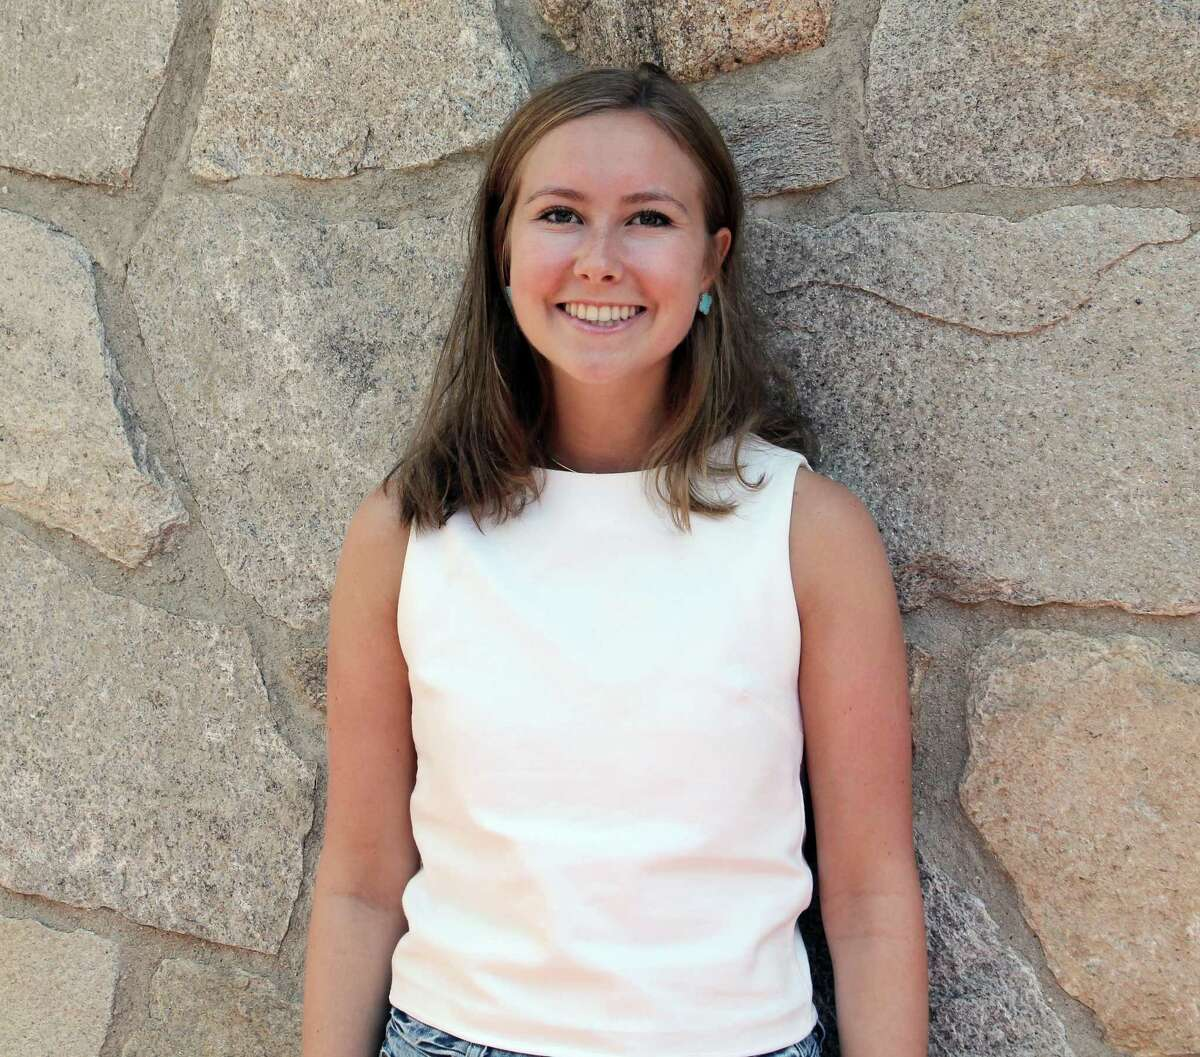 Charlotte Pratt of New Canaan, Conn. received a summer job out of her senior internship through New Canaan High School. Pratt graduated from NCHS in June 2017 and will be attending the University of Richmond in the fall.